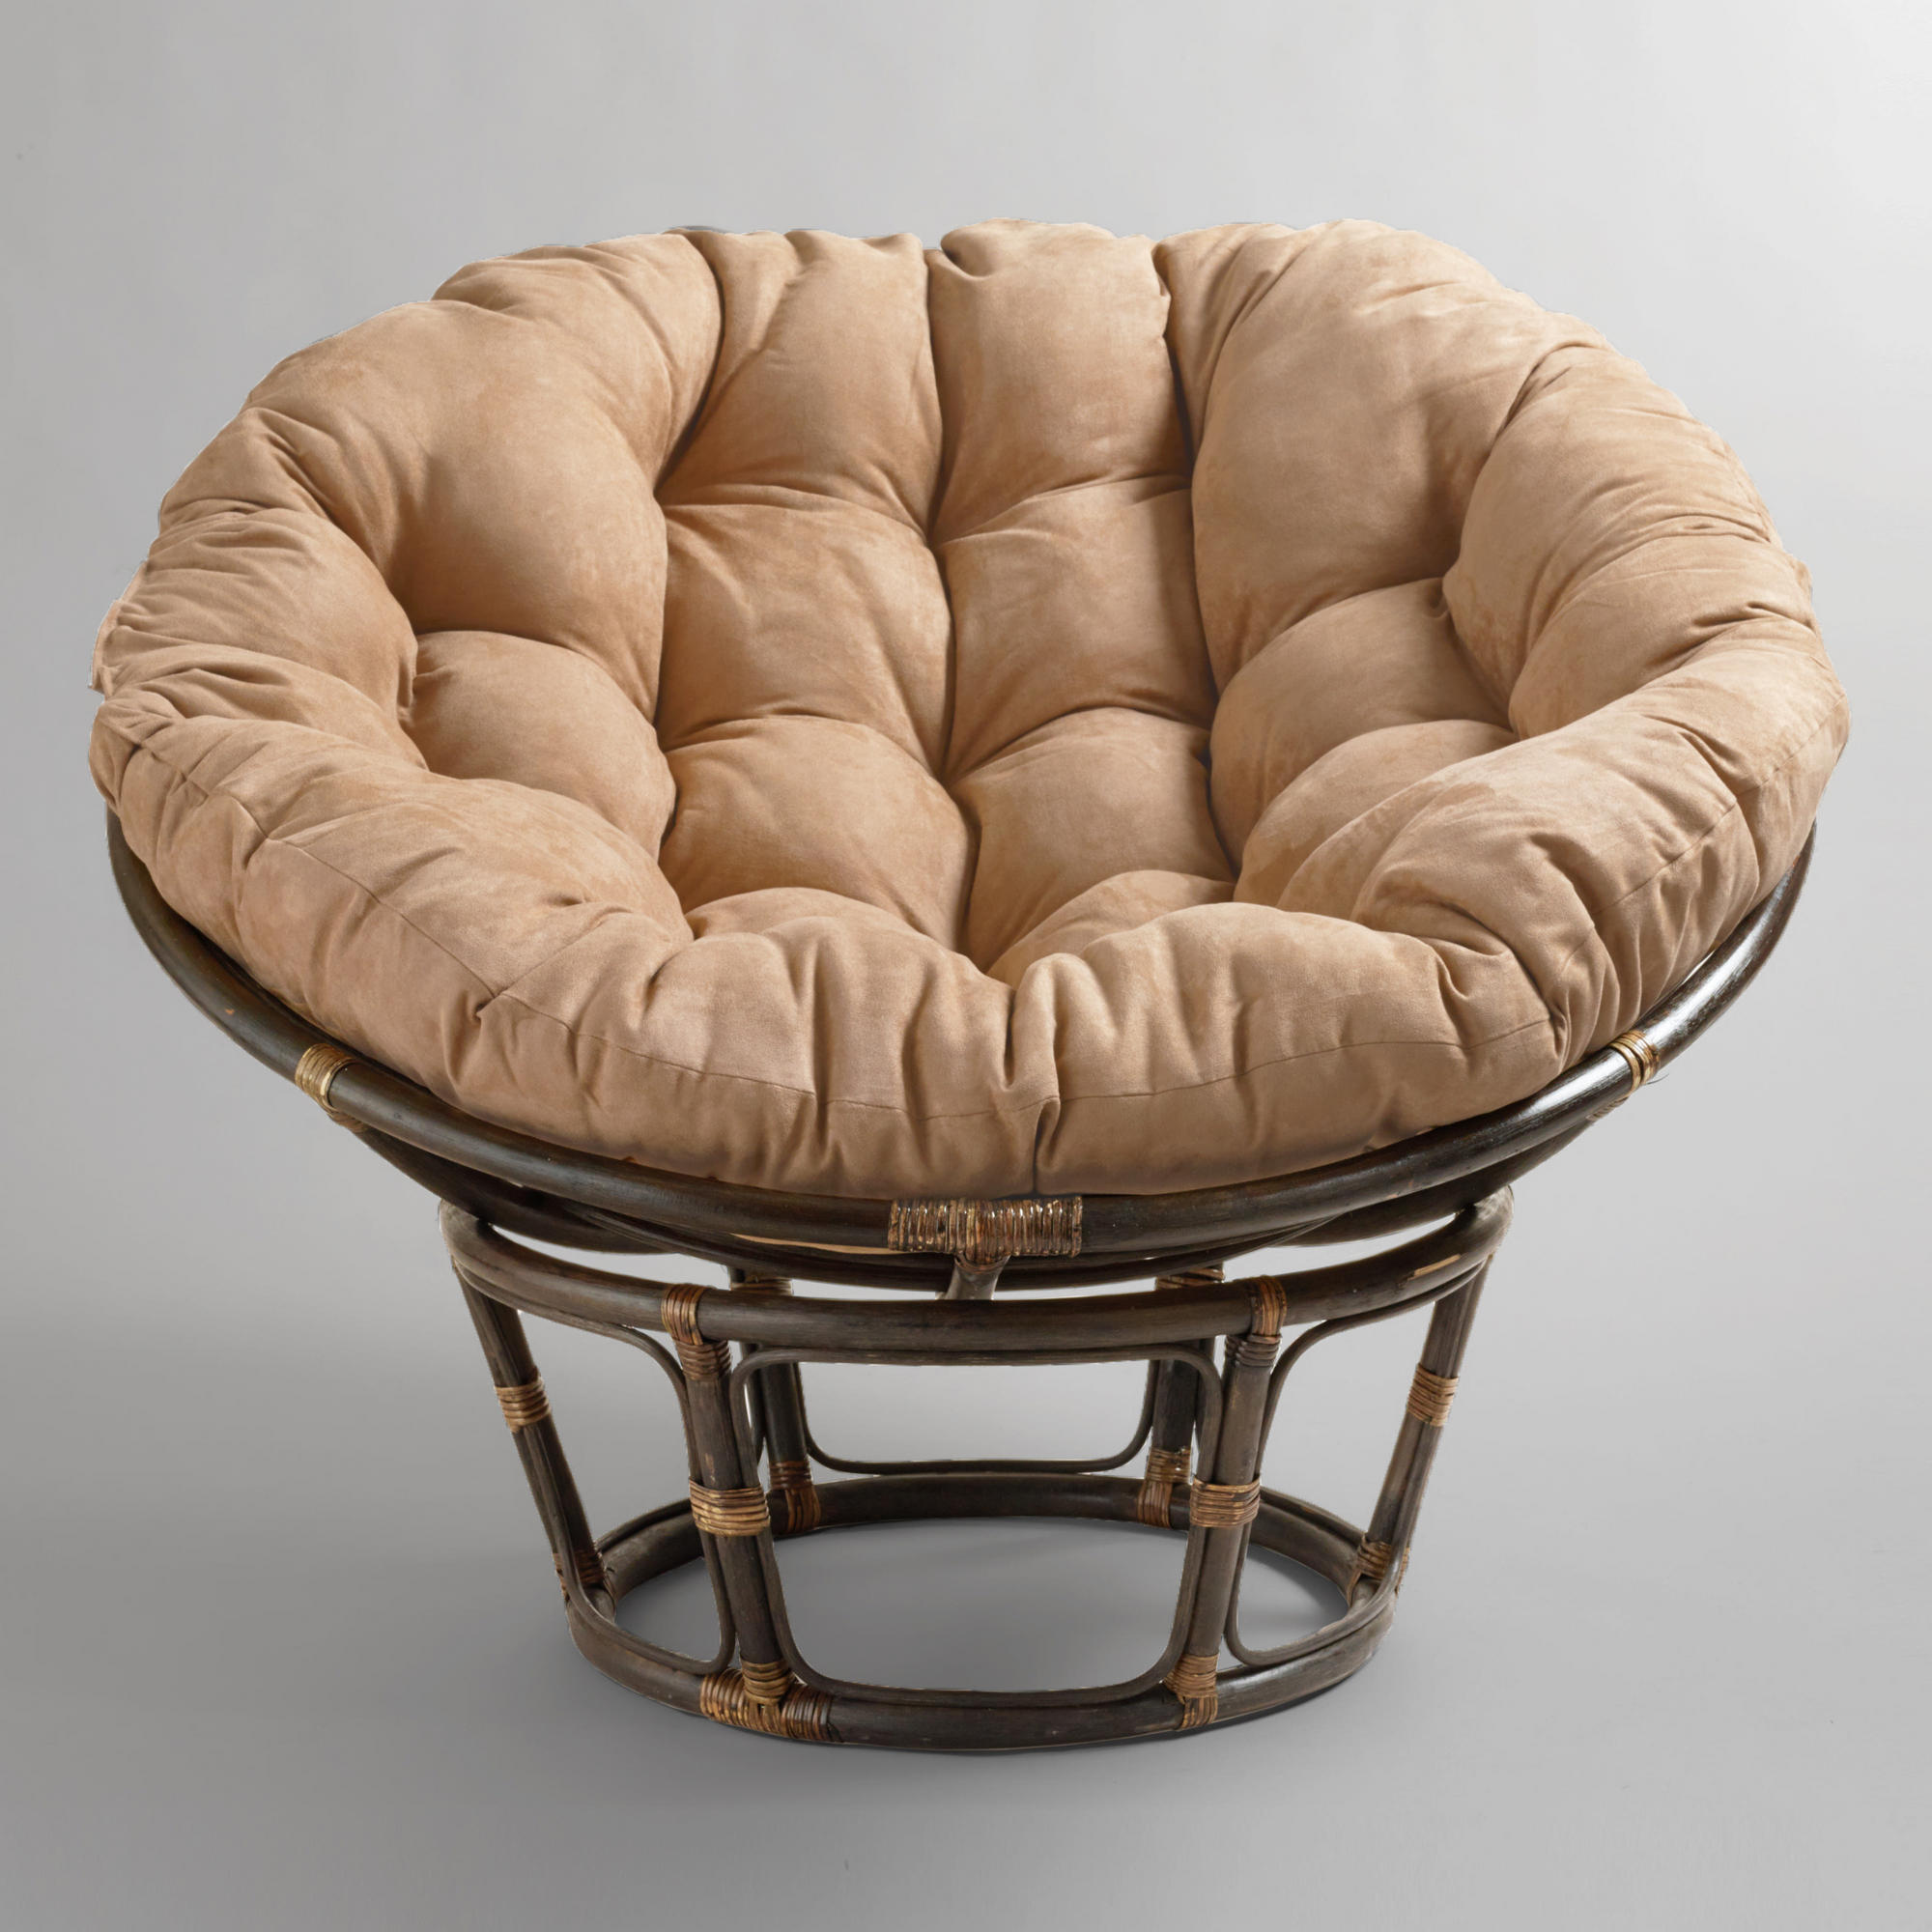 Khaki Microsuede Papasan Chair Cushion from Cost Plus World